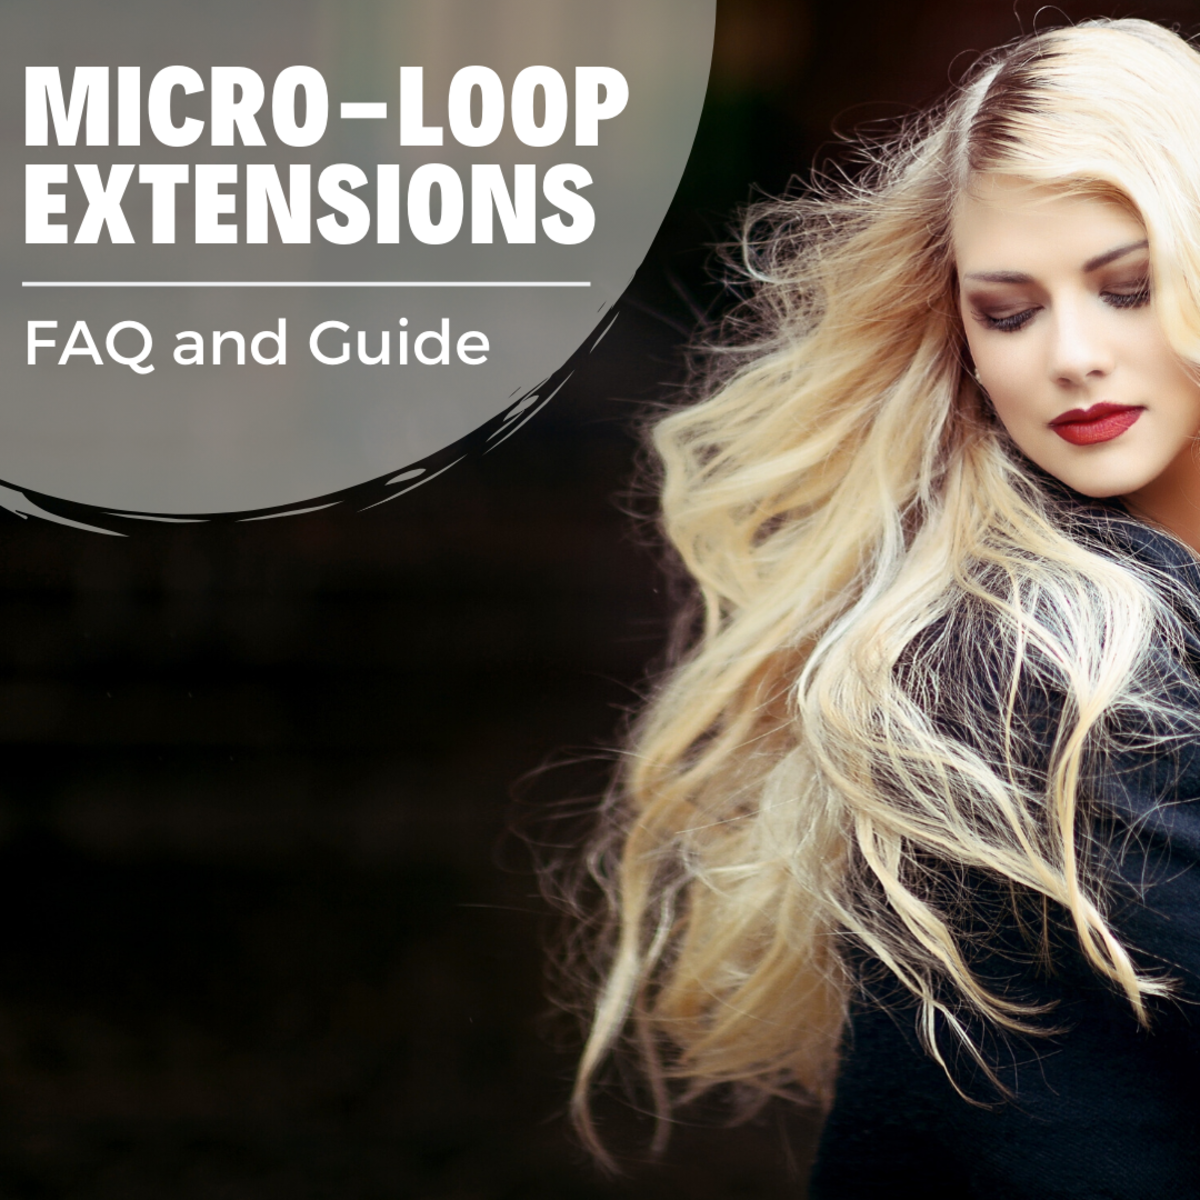 Guide to Micro-Ring or Micro-Loop Hair Extensions (FAQs)